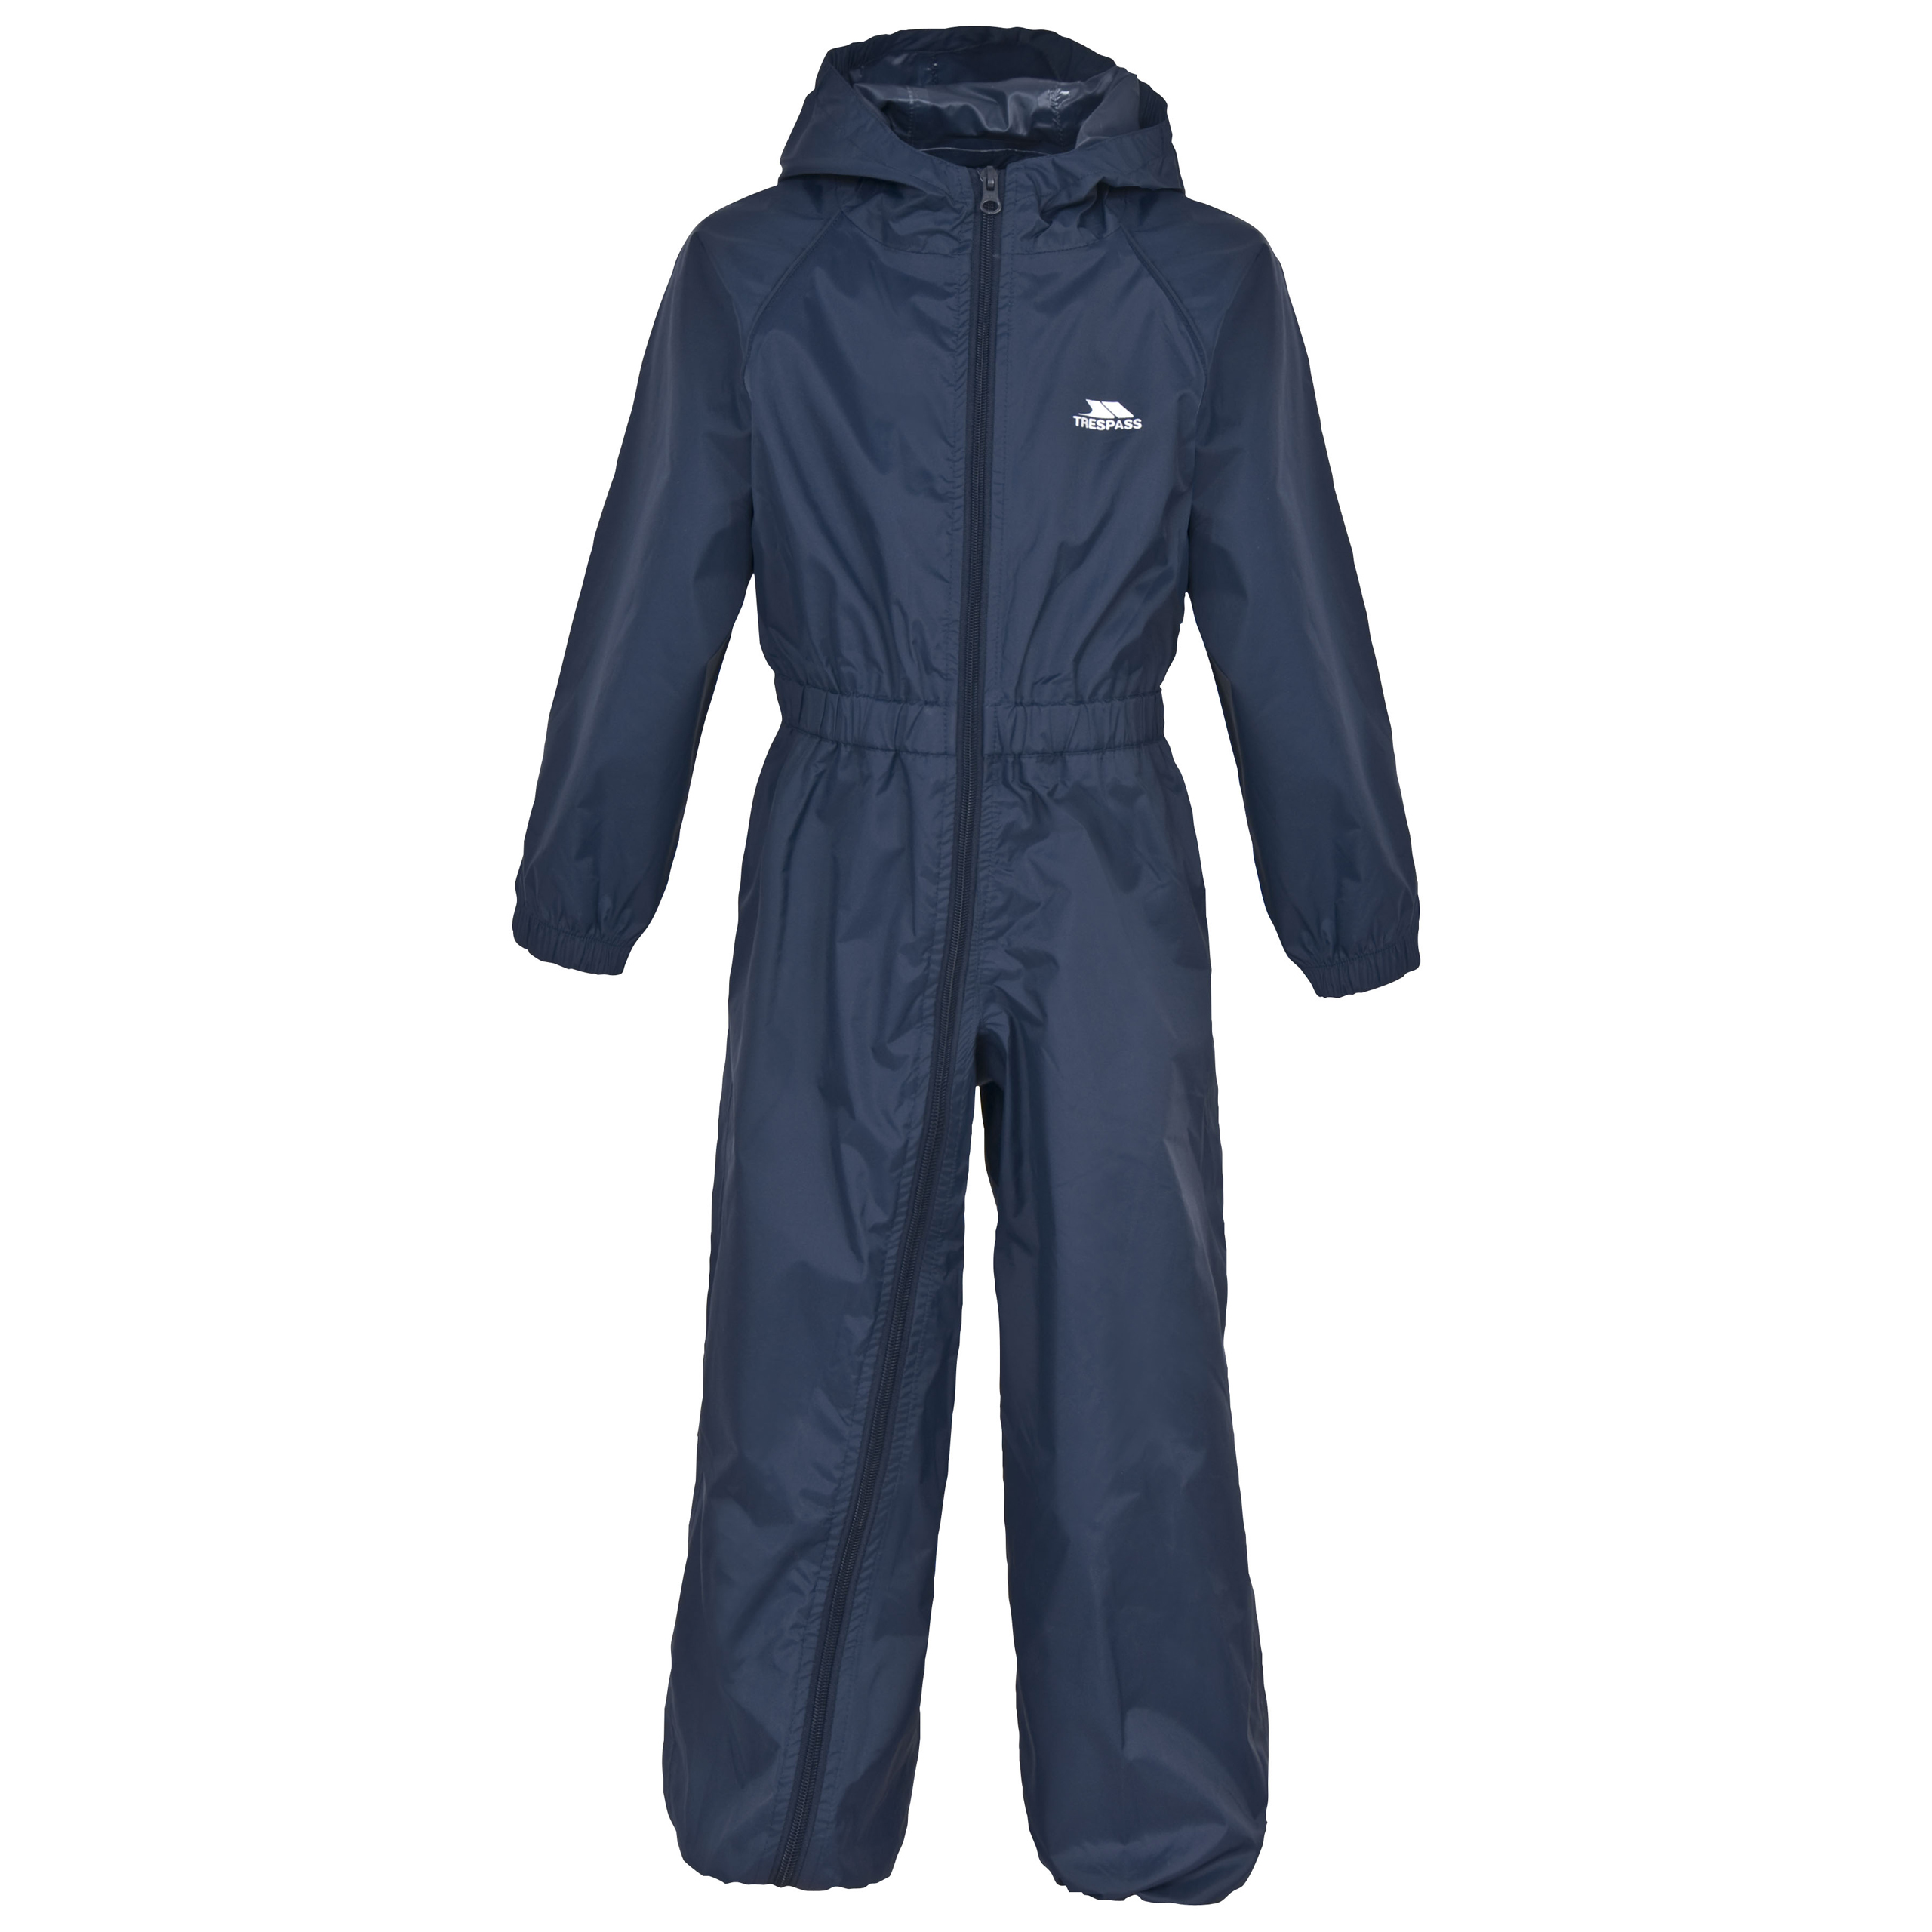 Dripdrop kidswaterproof breathable padded all in one rain suit is suitable forboth boys and girls. This rain suit iswaterproof to mm andbreathable to mvg, also withtaped seams and windproof.